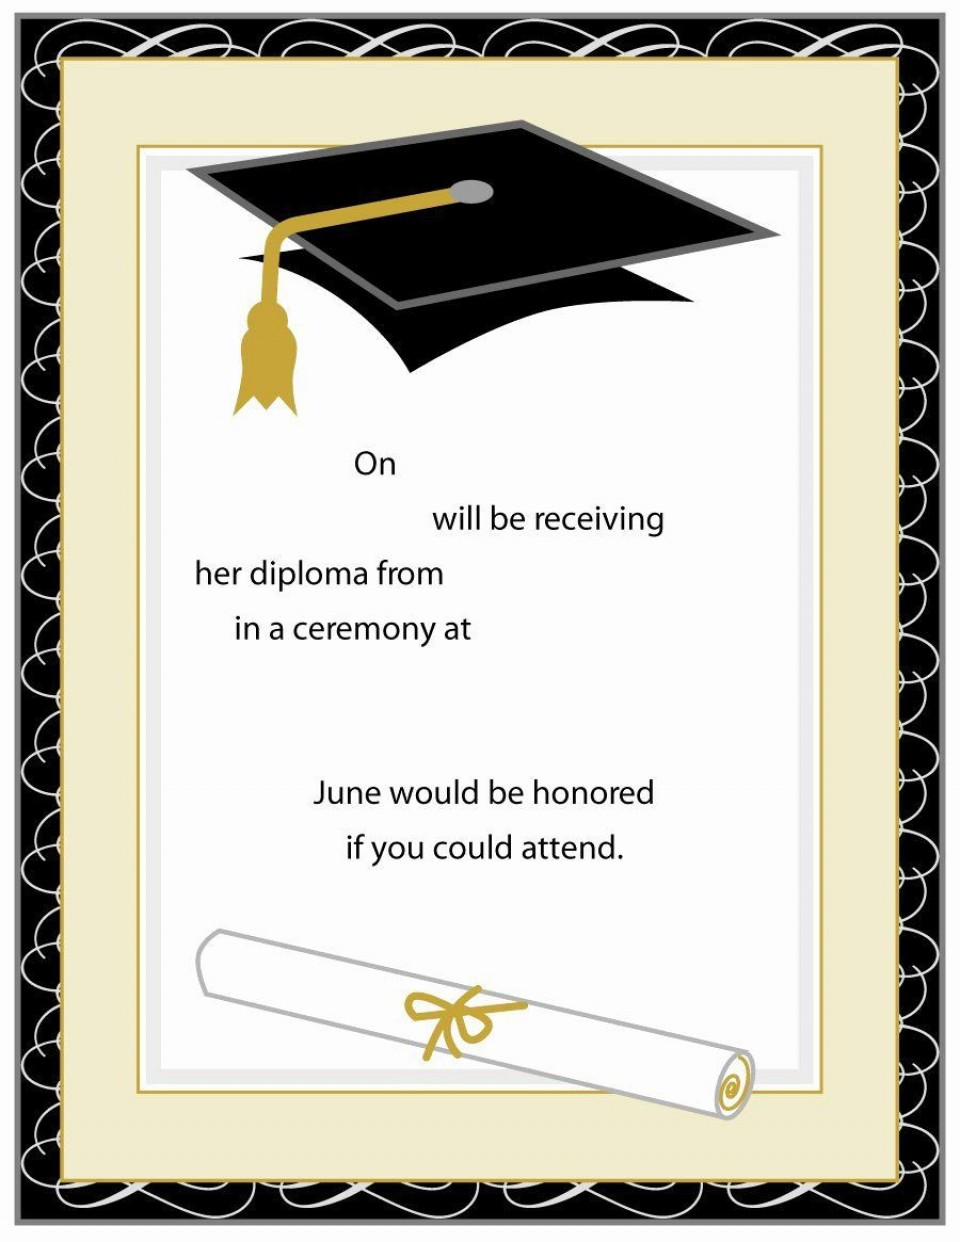 007 Surprising Free Graduation Announcement Template Example  Invitation Microsoft Word Printable Kindergarten960